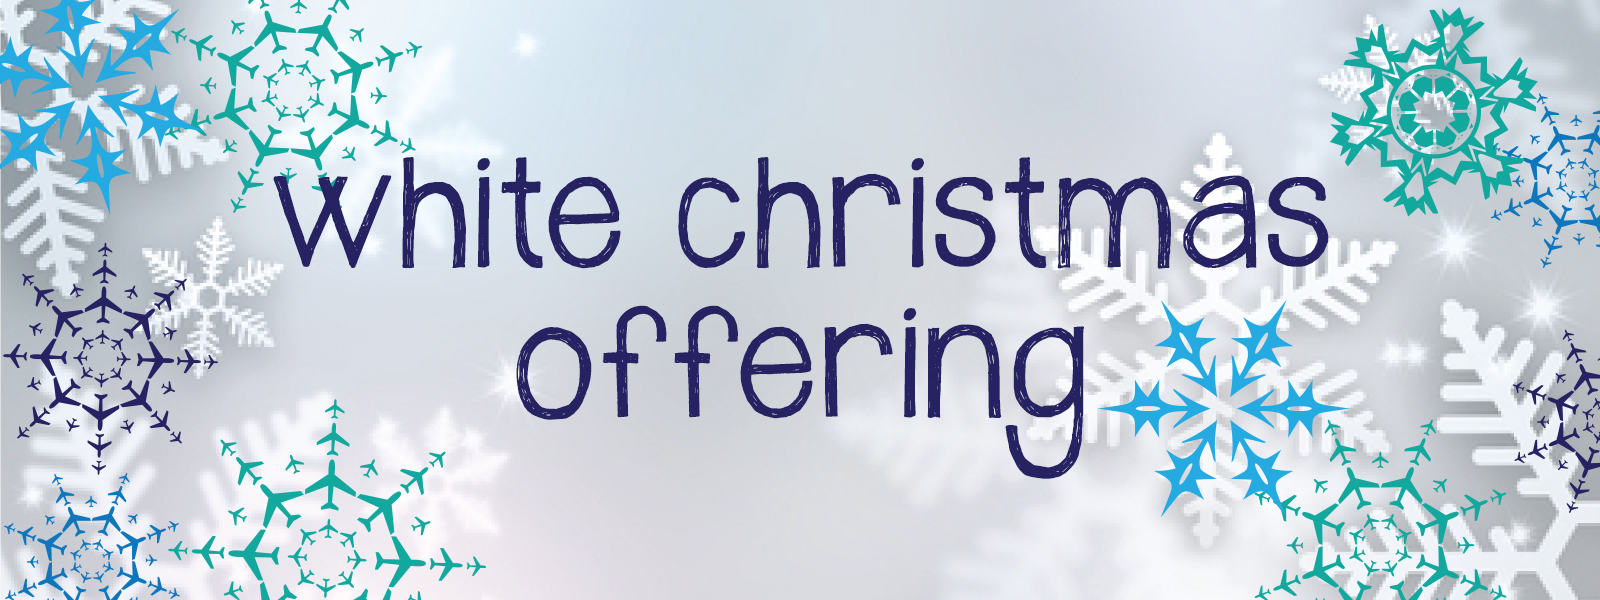 White Christmas Offering